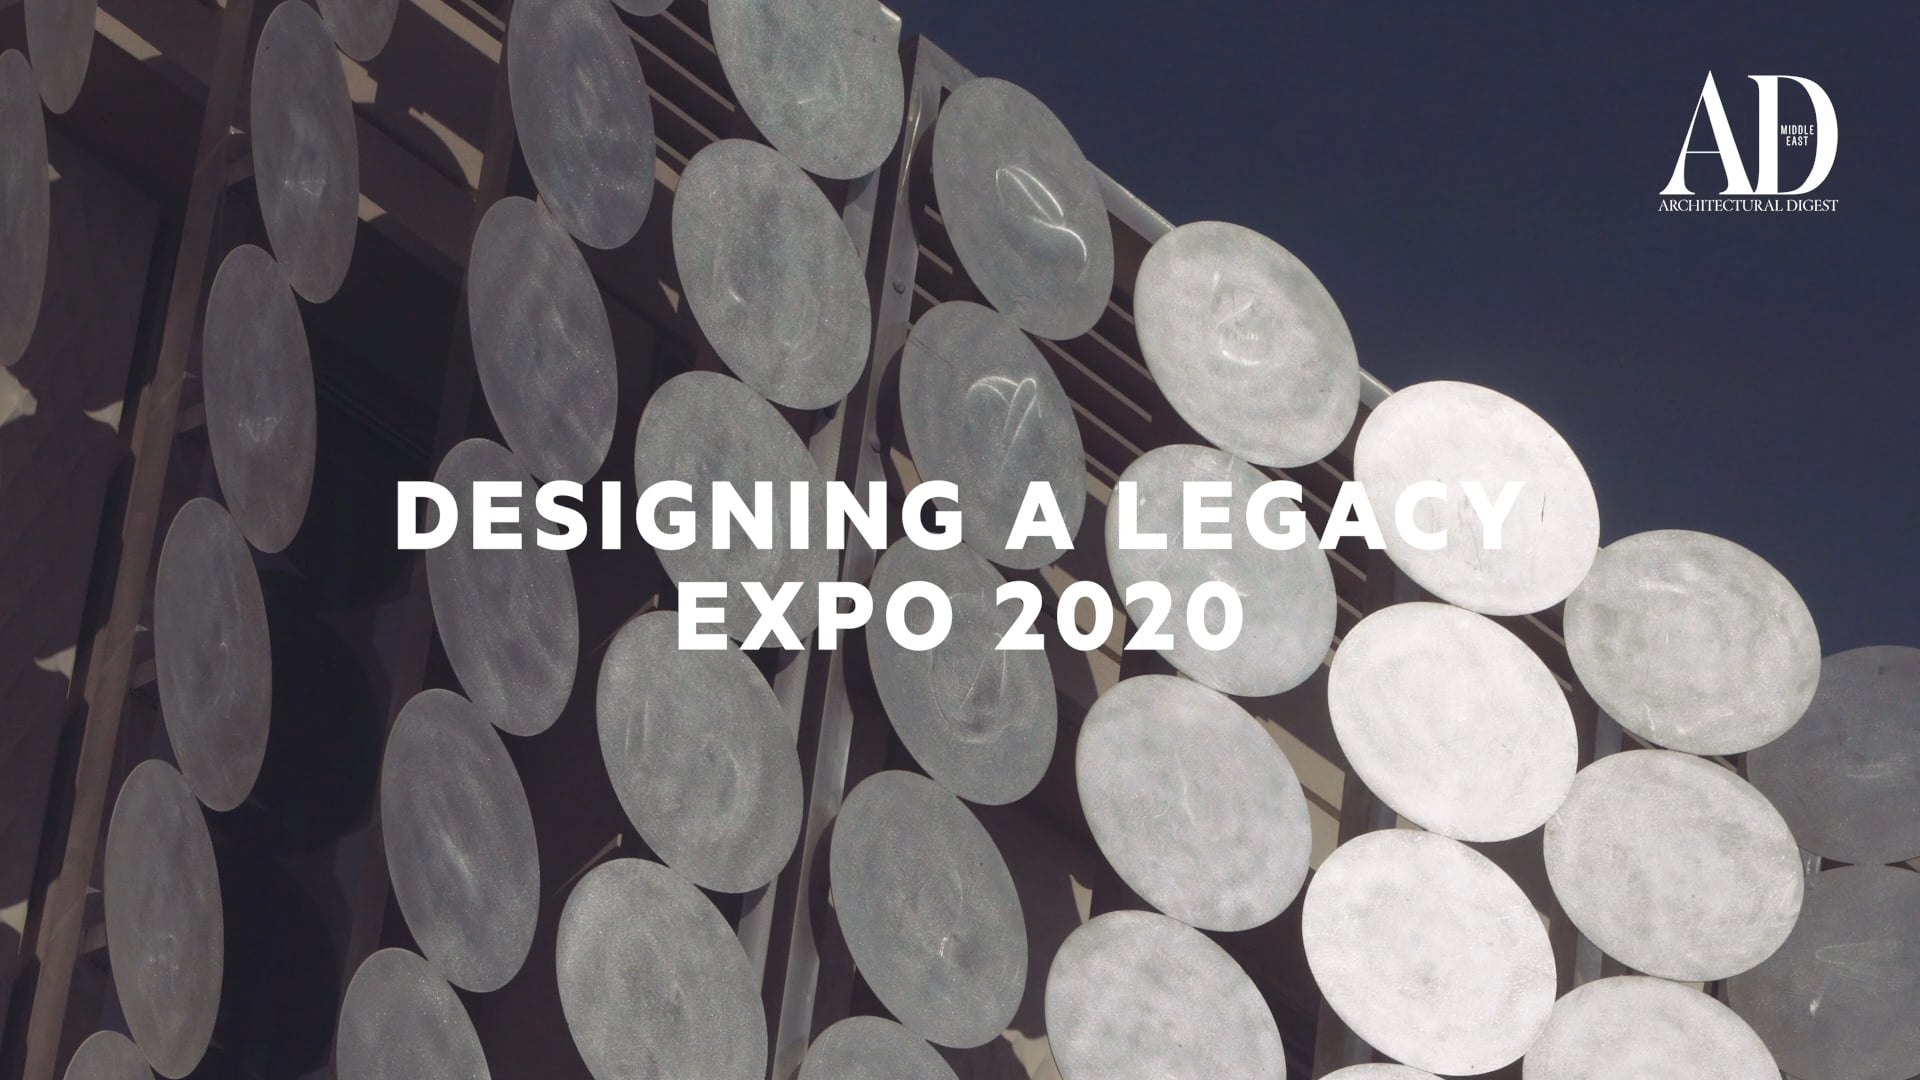 Designing A Legacy - Expo 2020